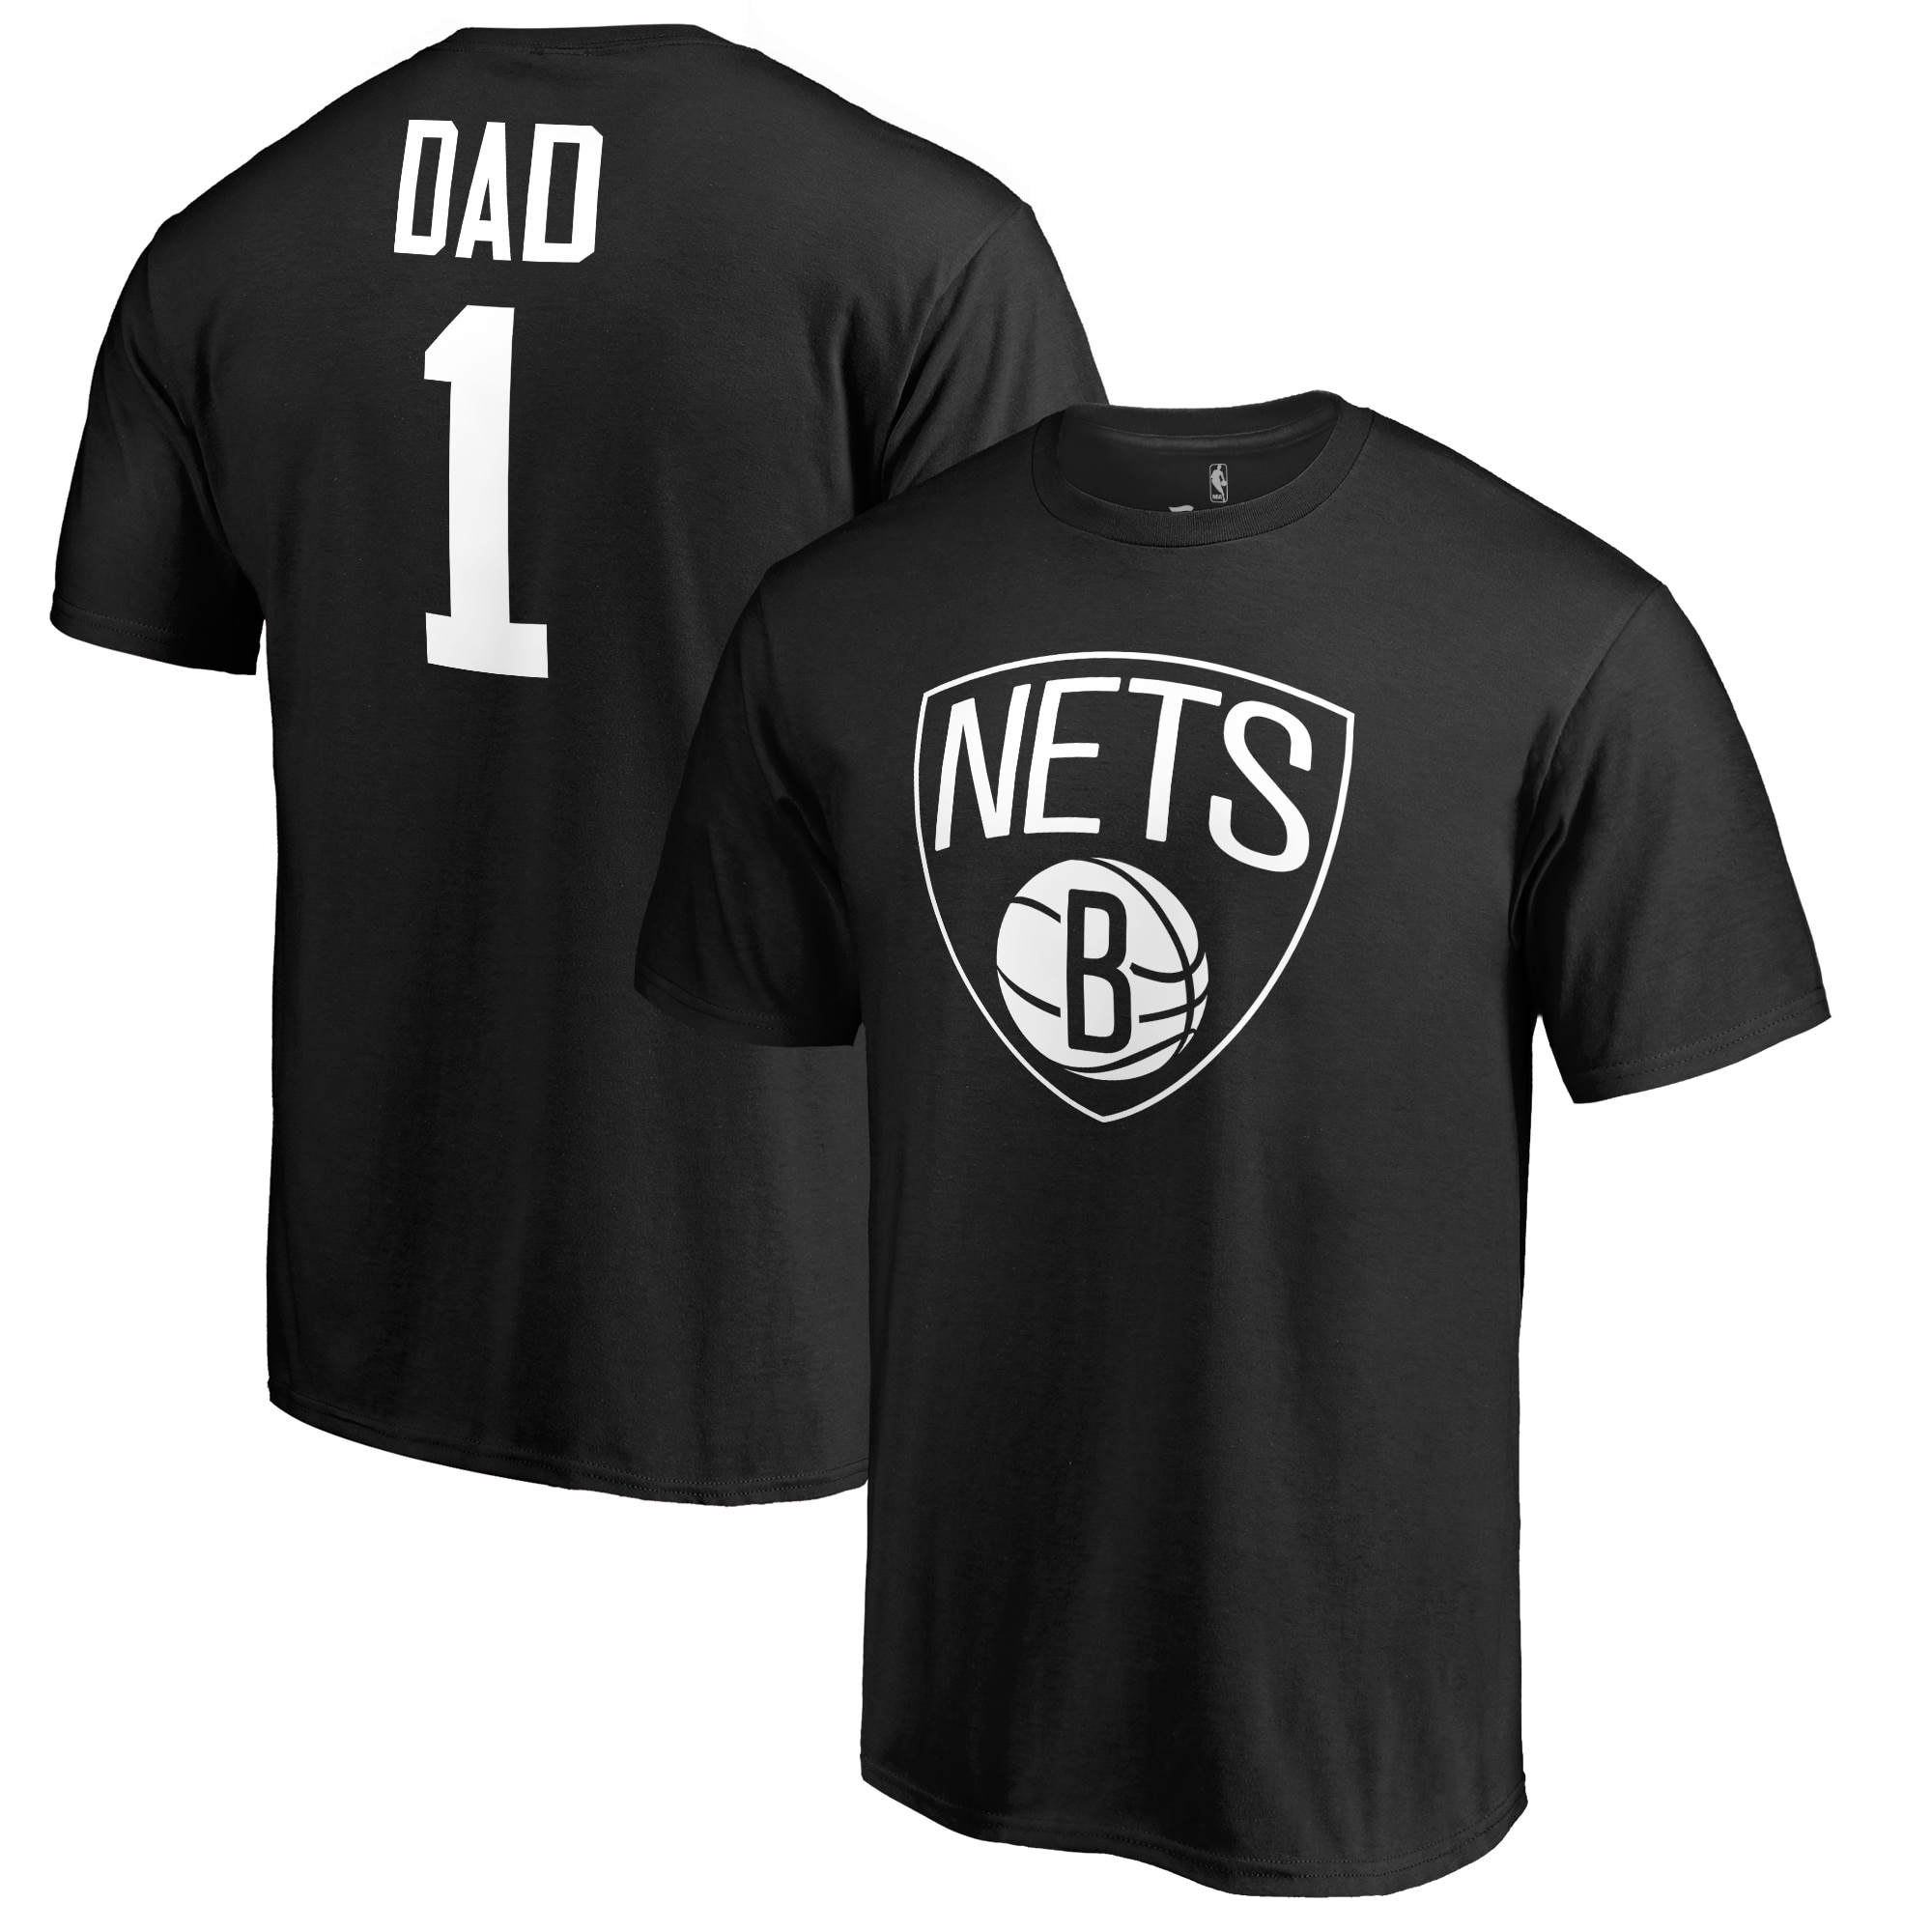 Brooklyn Nets #1 Dad T-Shirt - Black